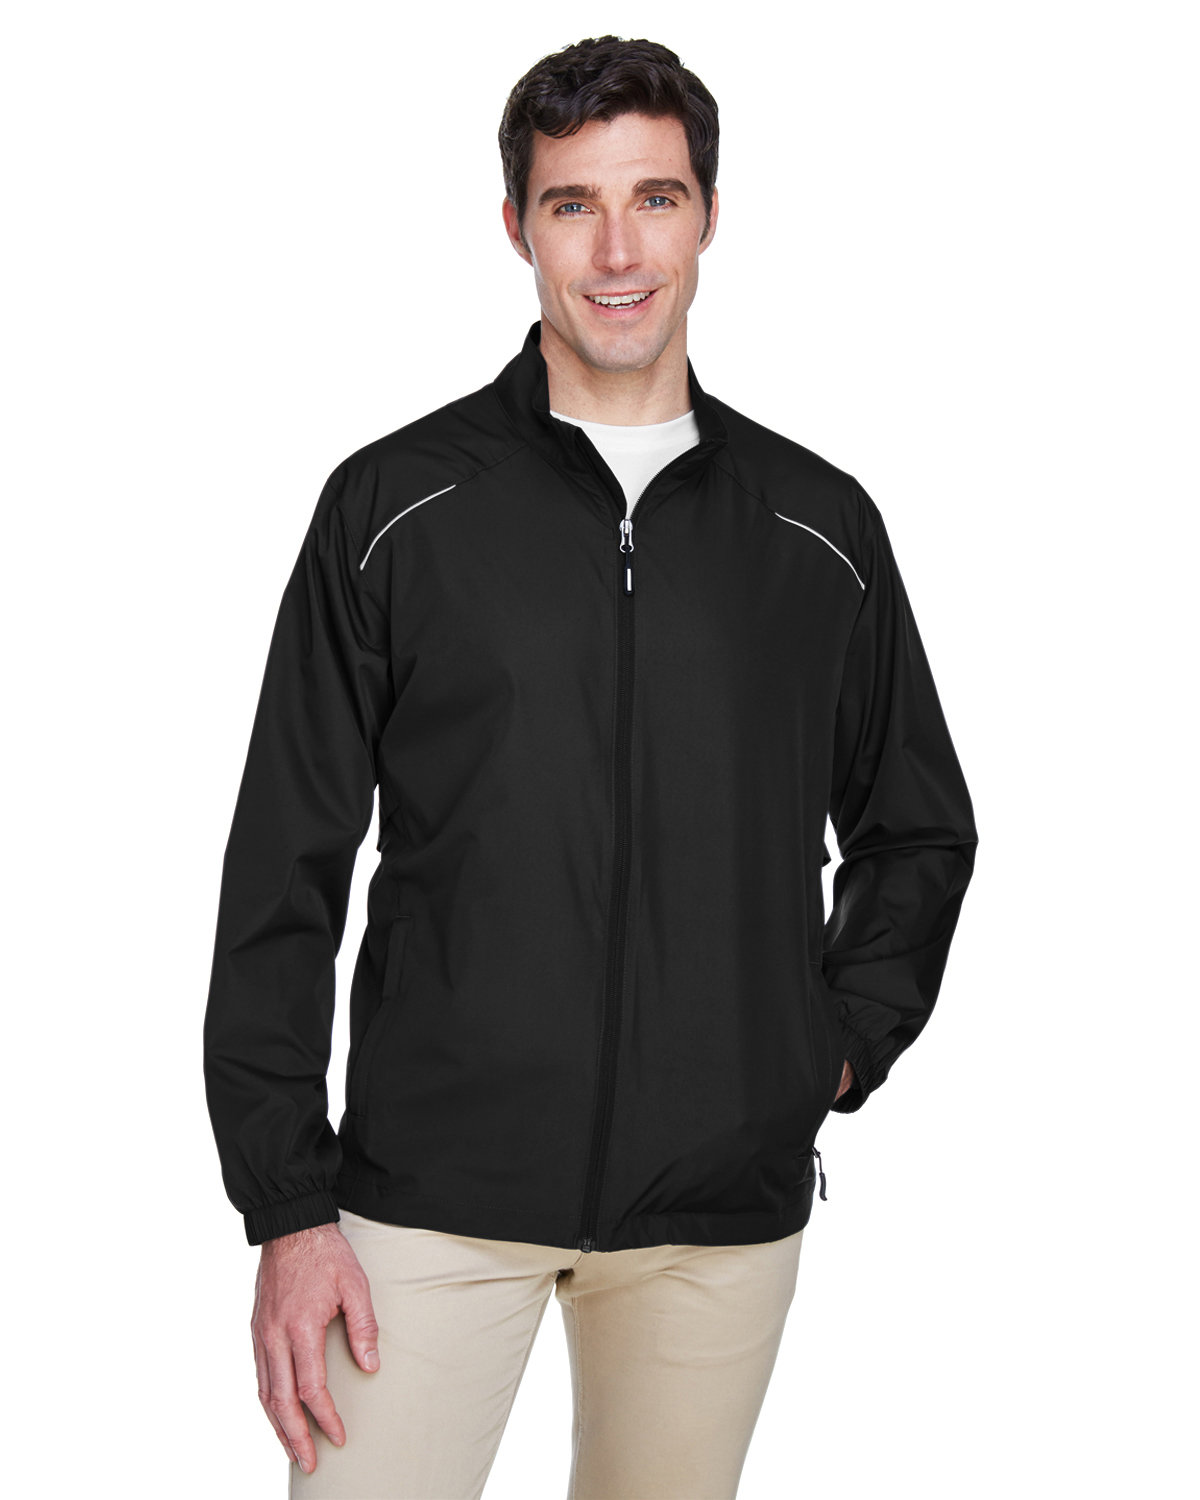 Core 365 Men's Motivate Unlined Lightweight Jacket BLACK